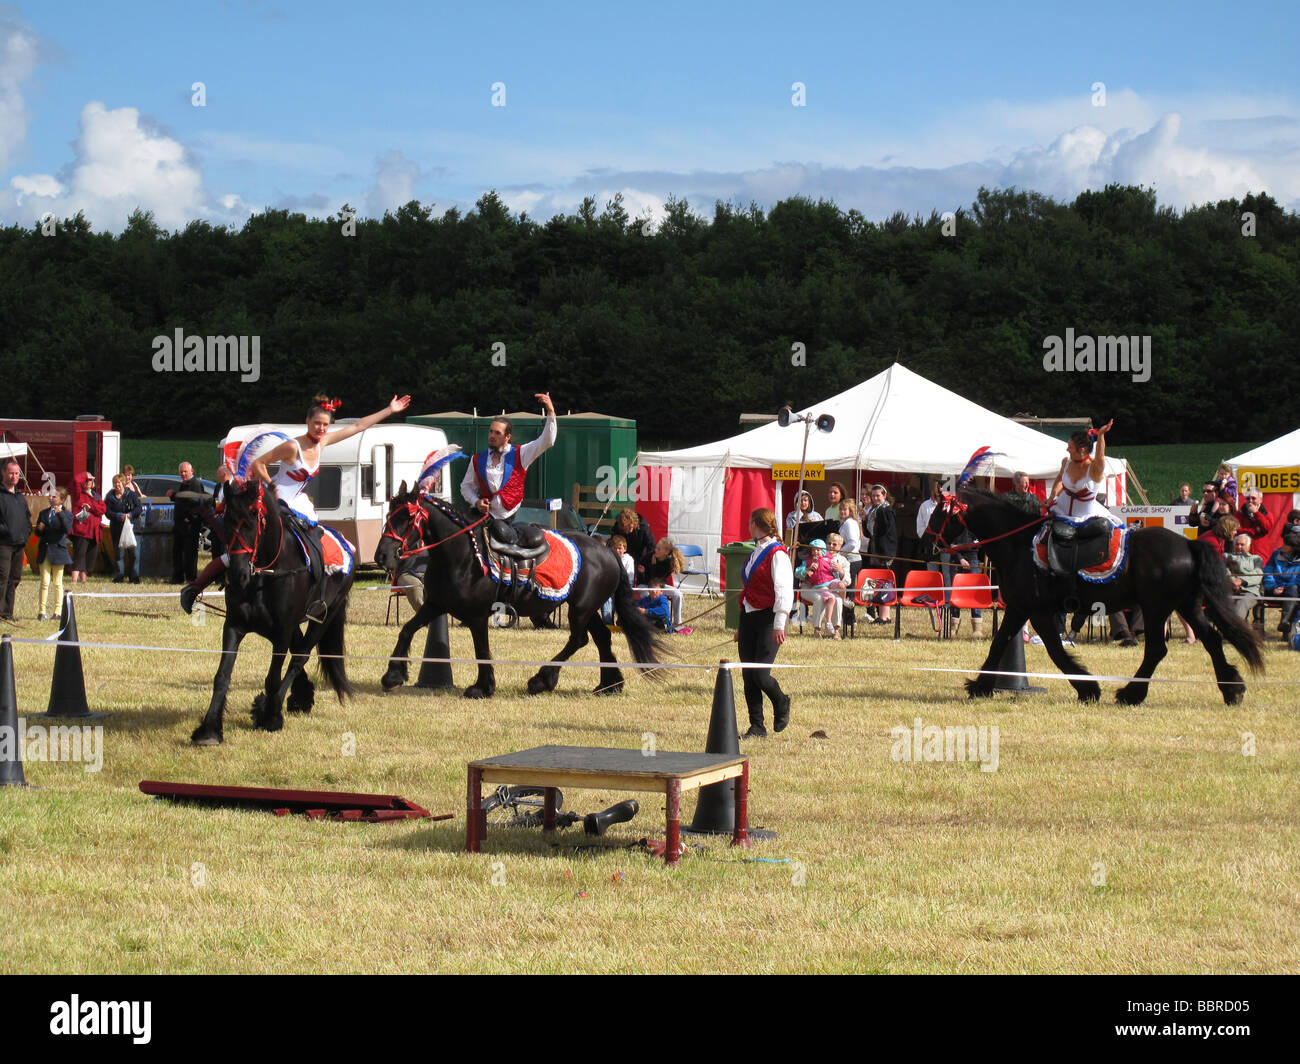 Stunt display riding act at country show - Stock Image